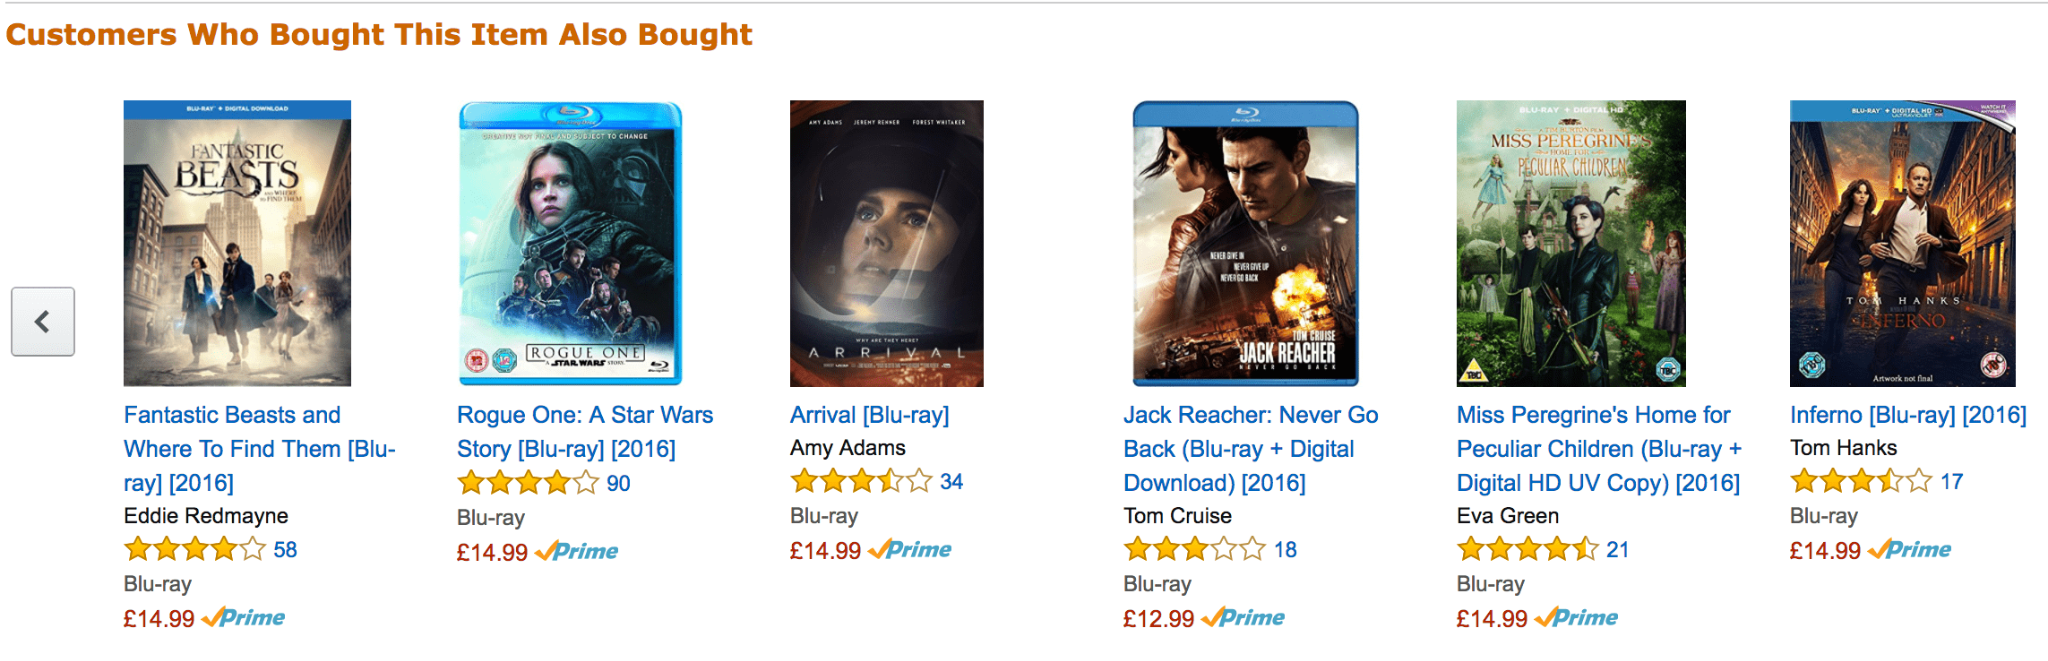 Amazon's personalized recommendations